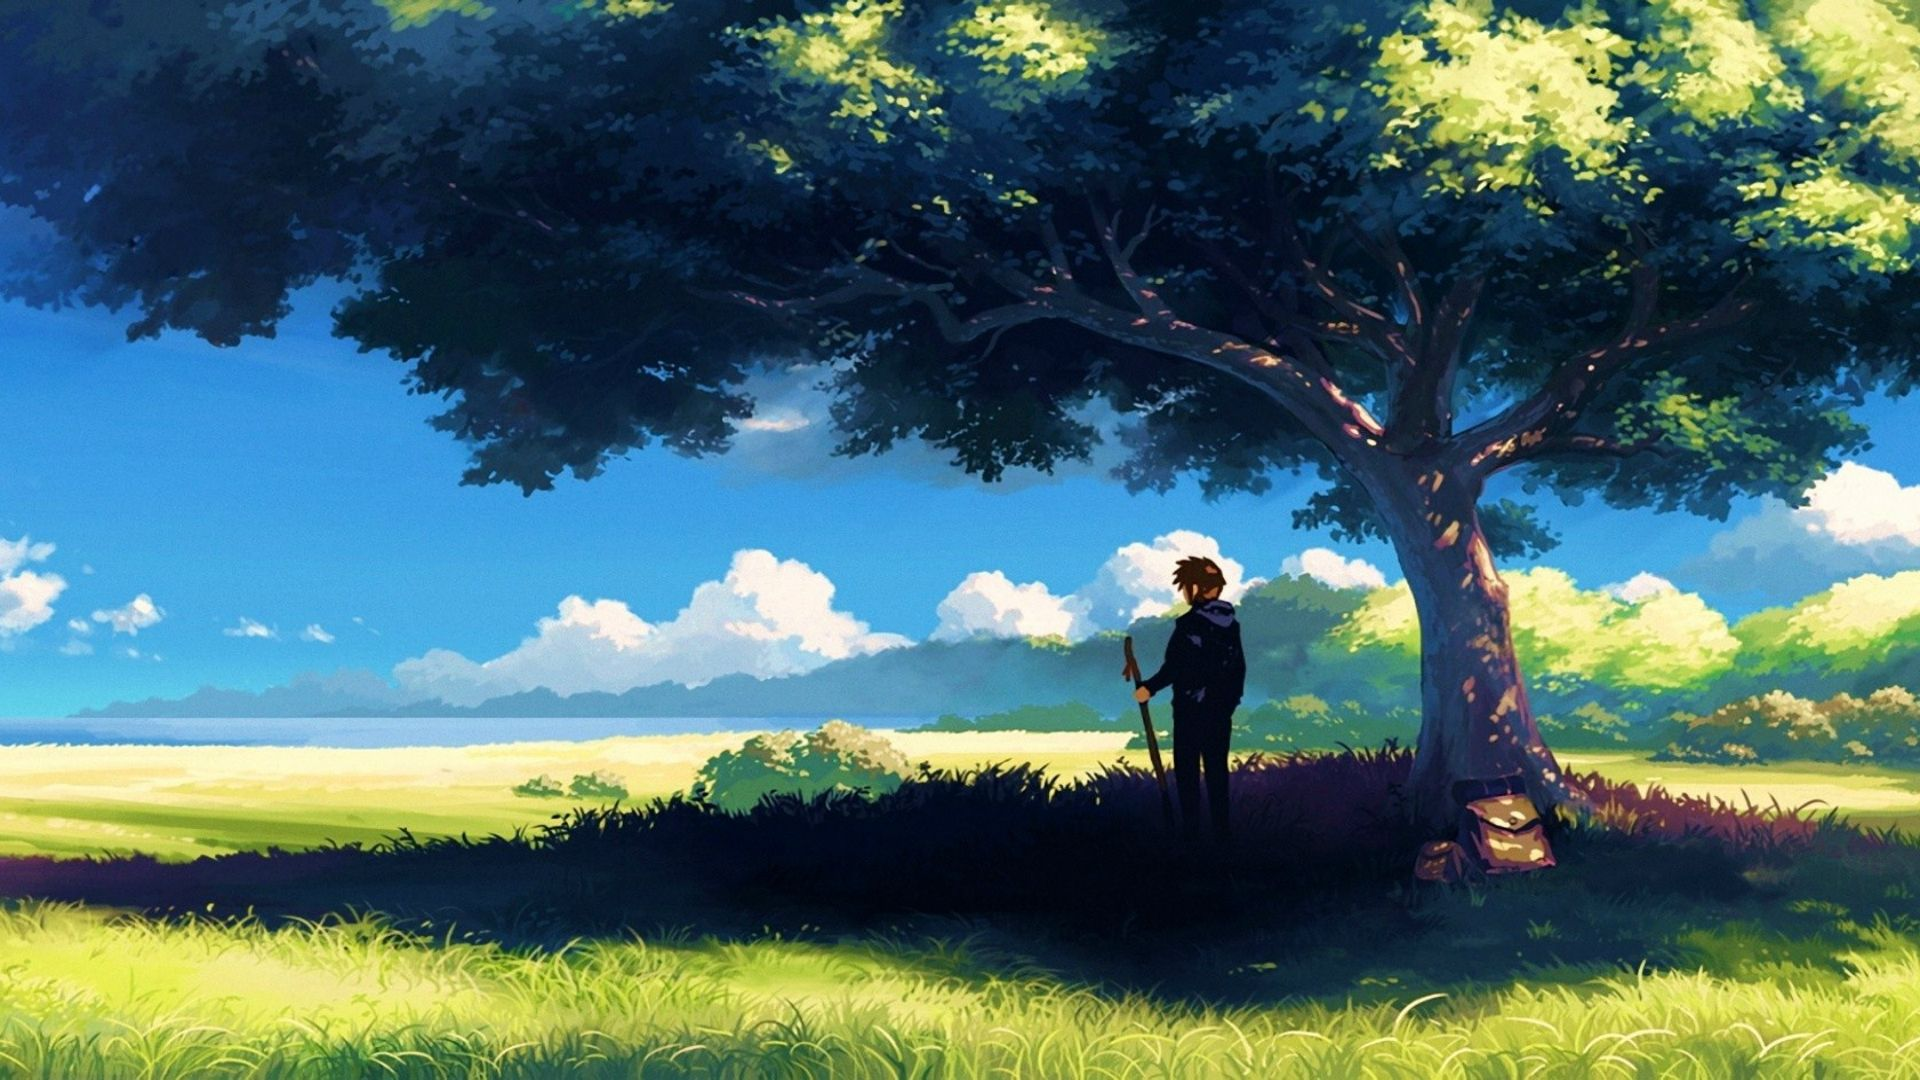 Anime Scenery Wallpaper Anime Backgrounds In 2019 Anime Scenery